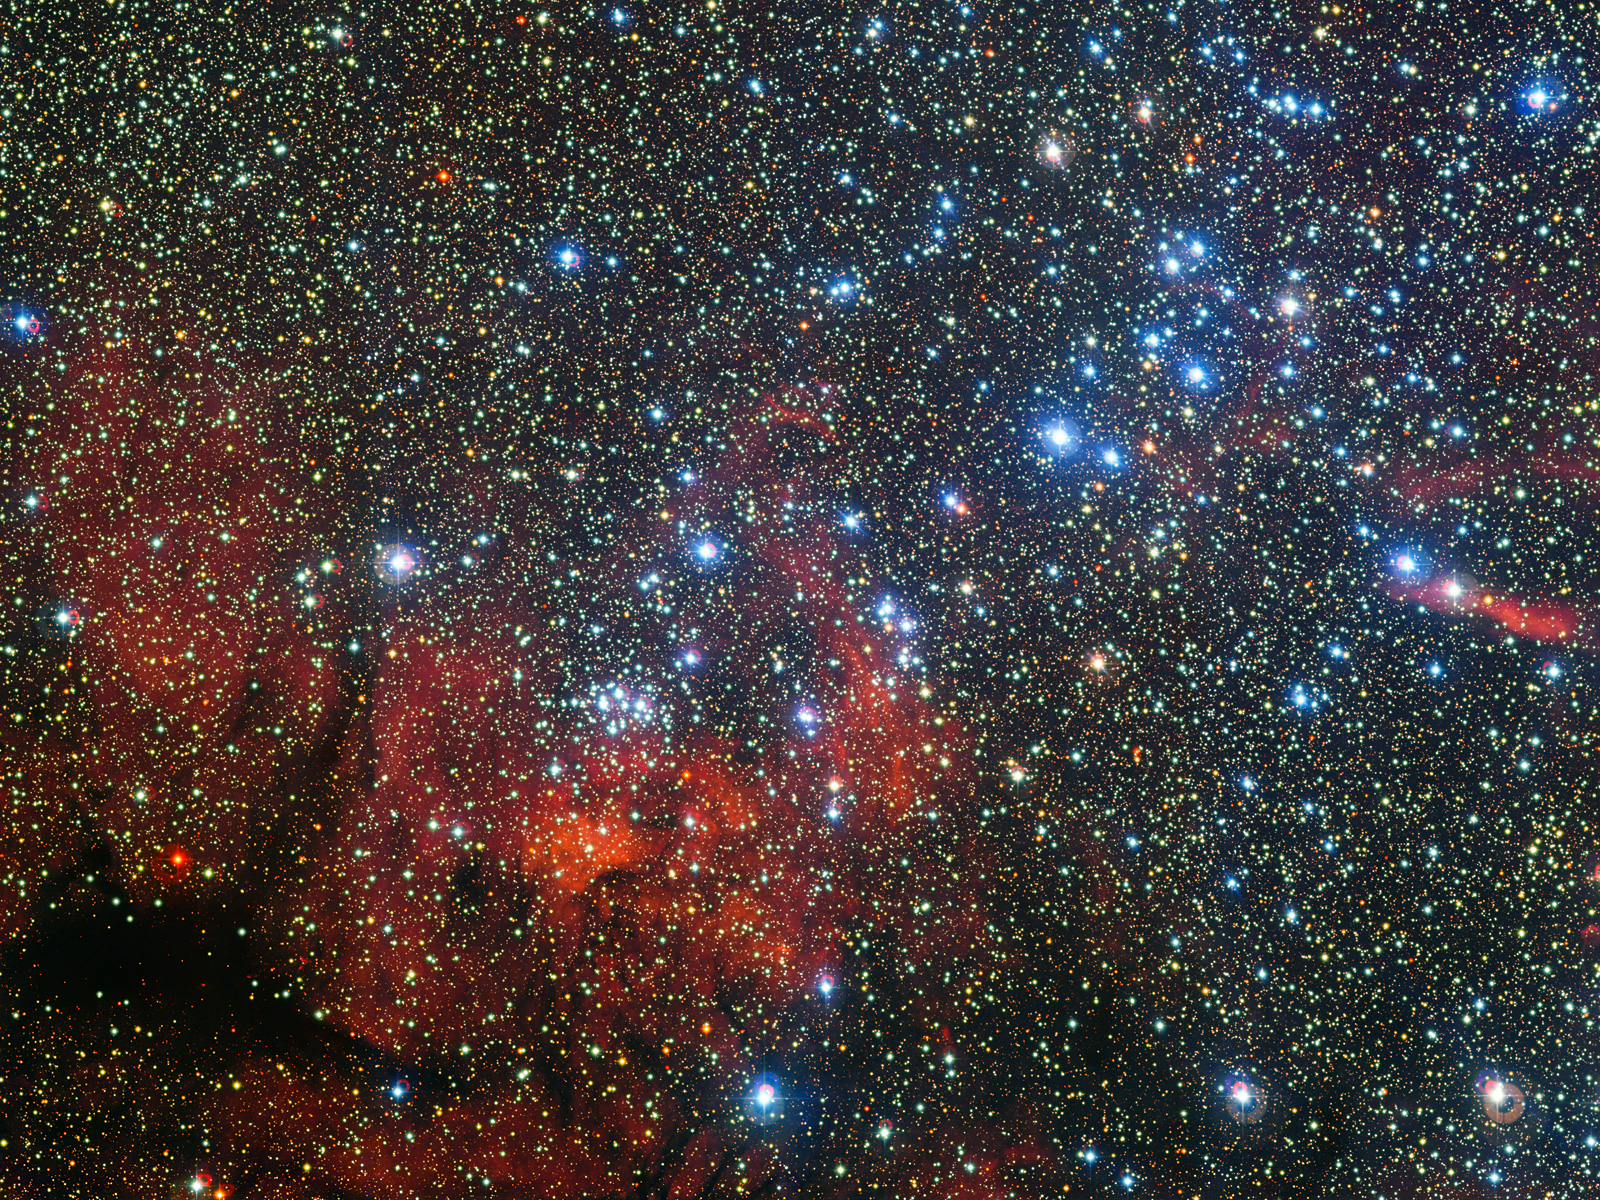 Colorful Star Cluster NGC 3590 1600